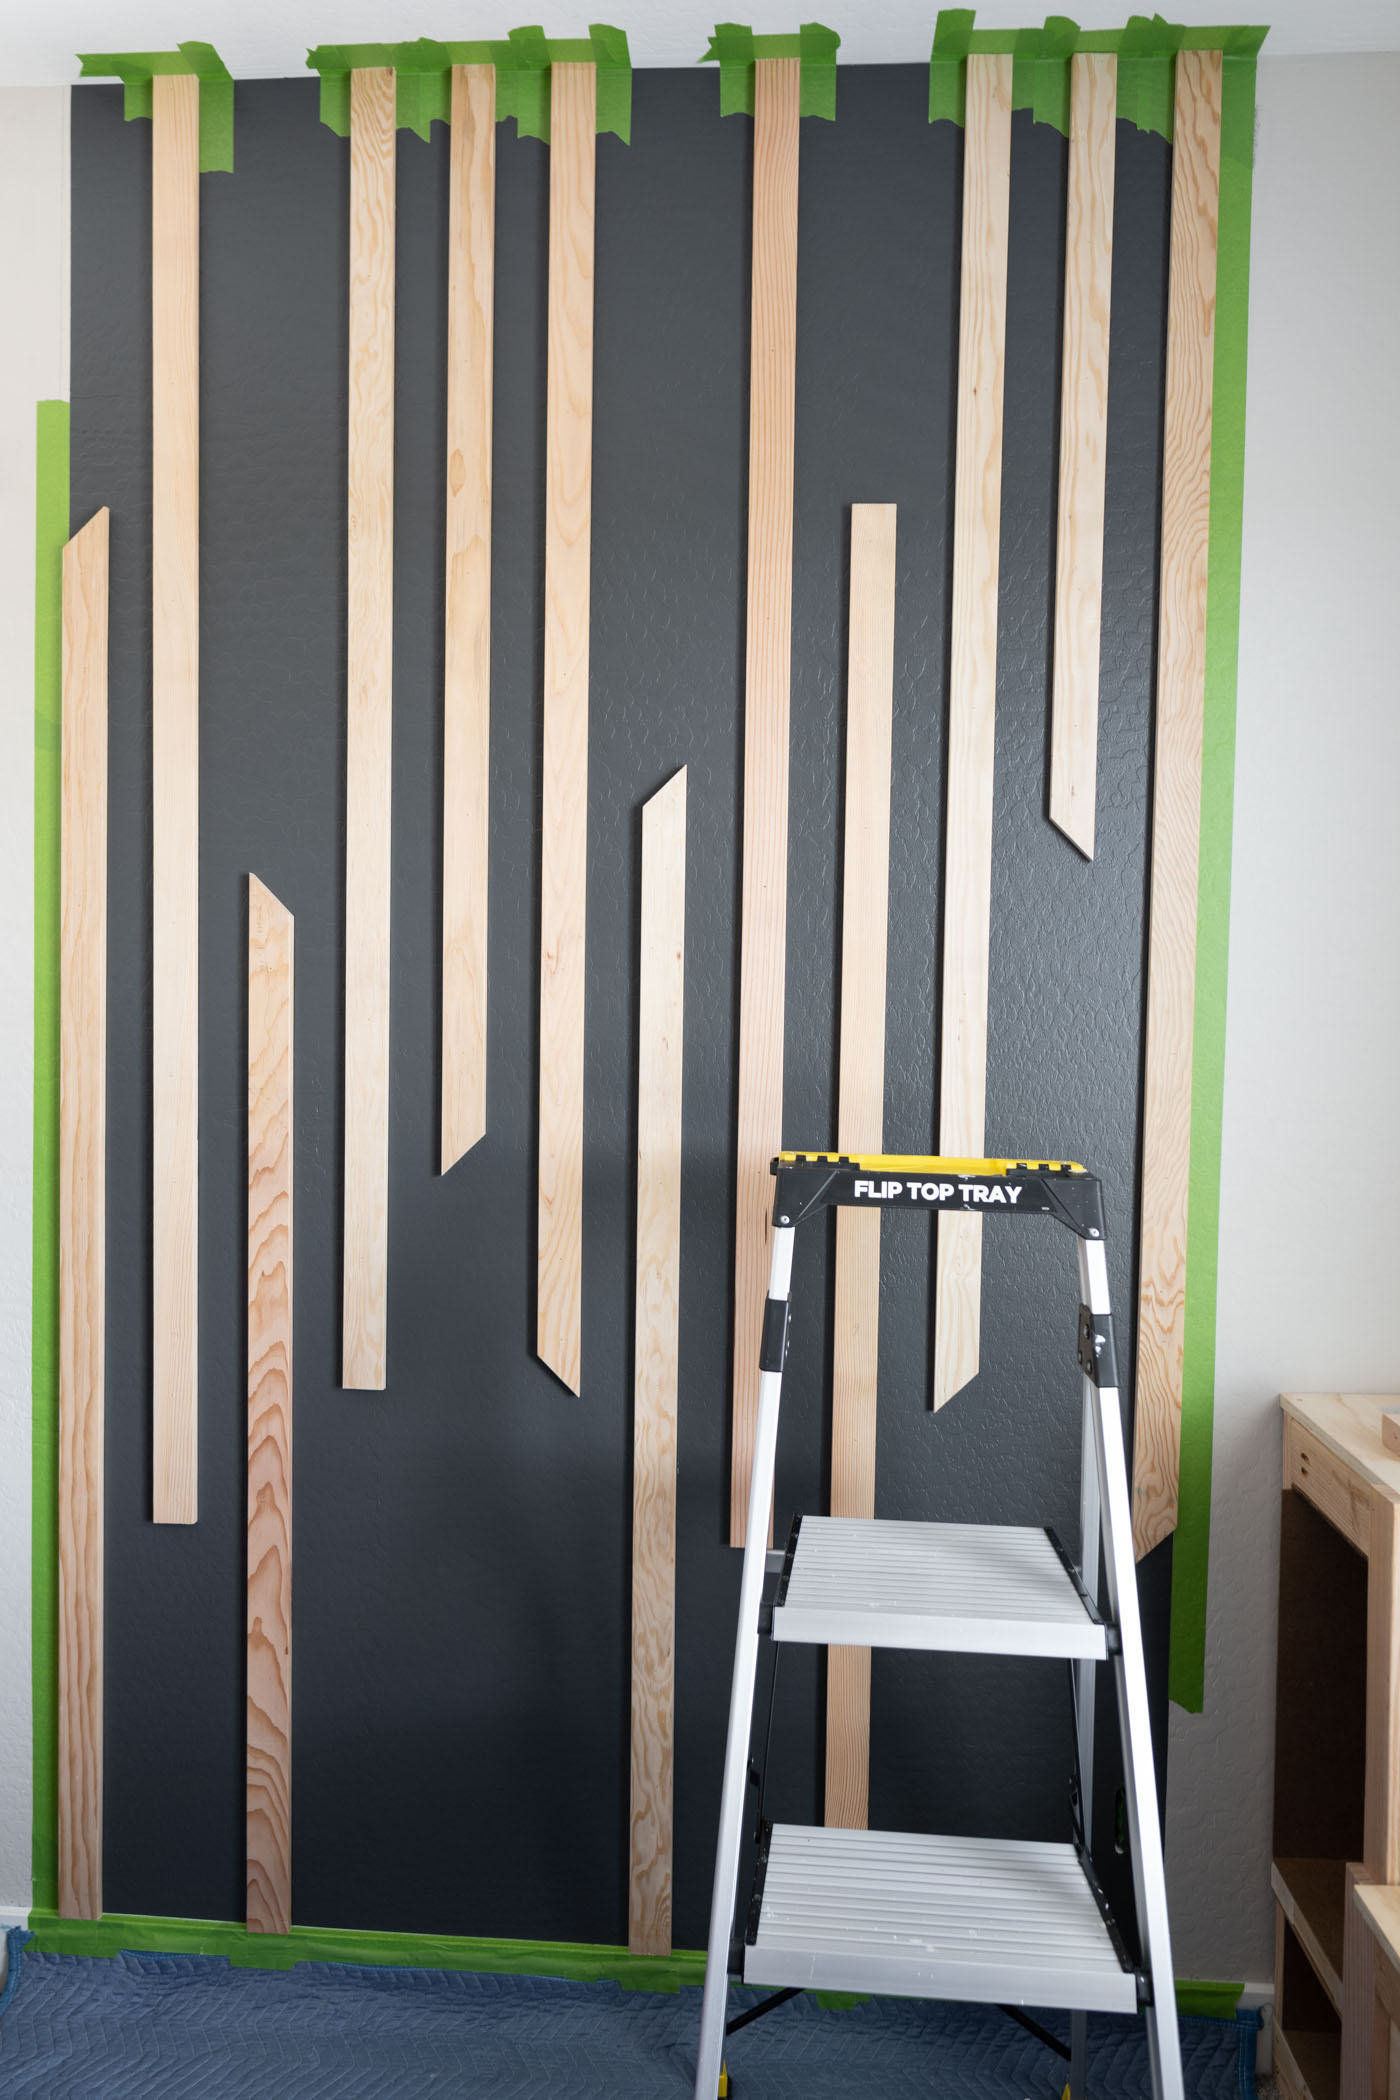 Paint wood boards to complete the DIY slat wall look.